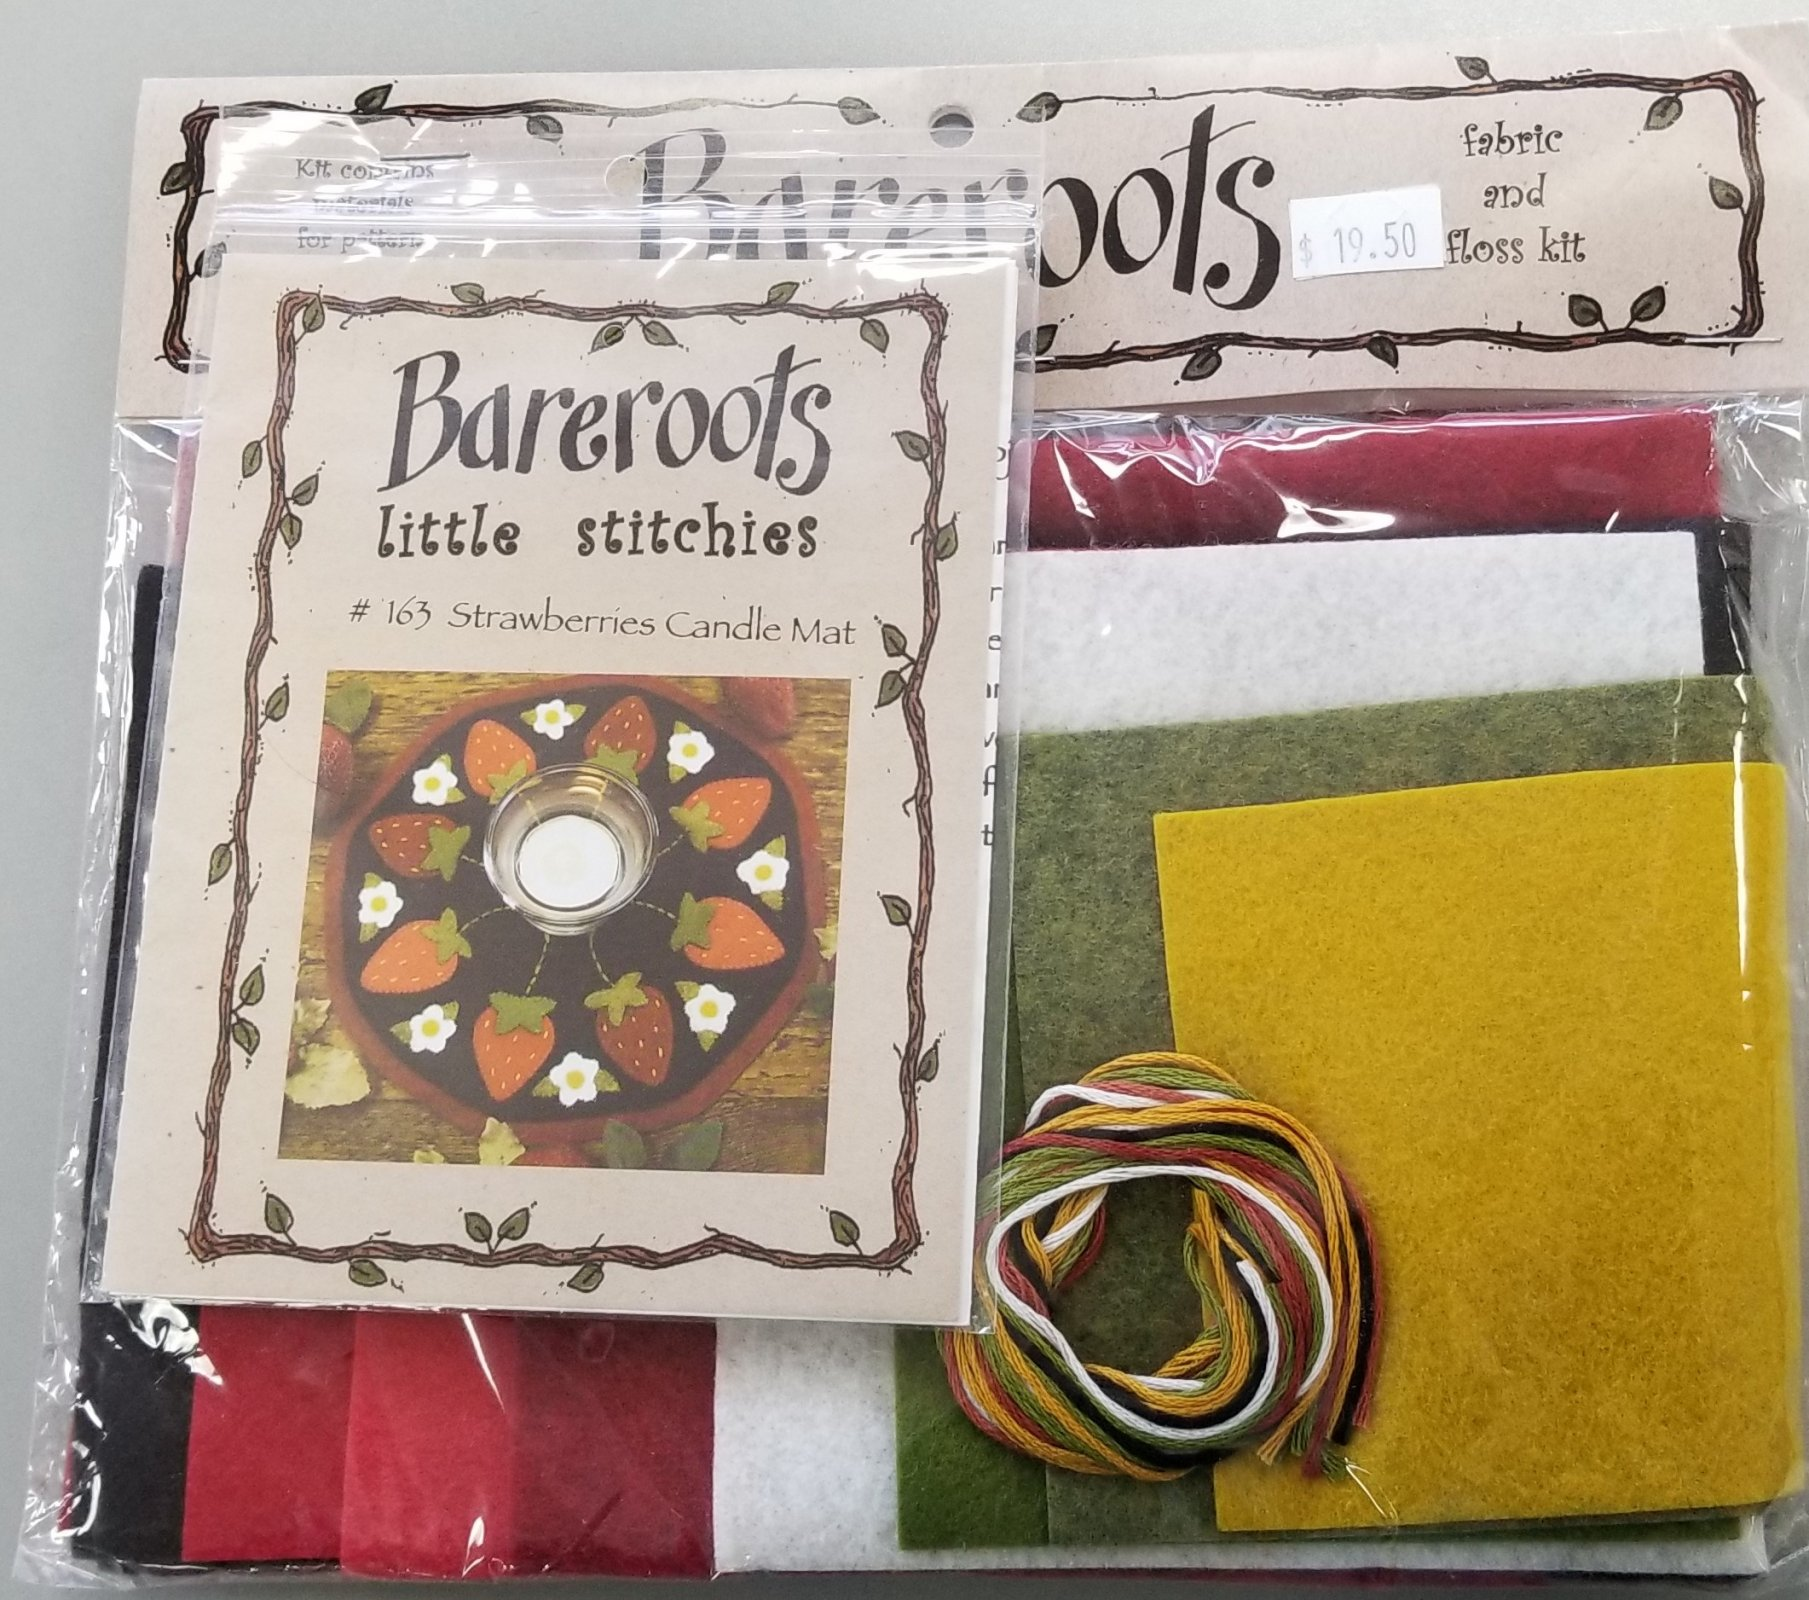 Bareroots Little Stitchies Strawberries Candle Mat